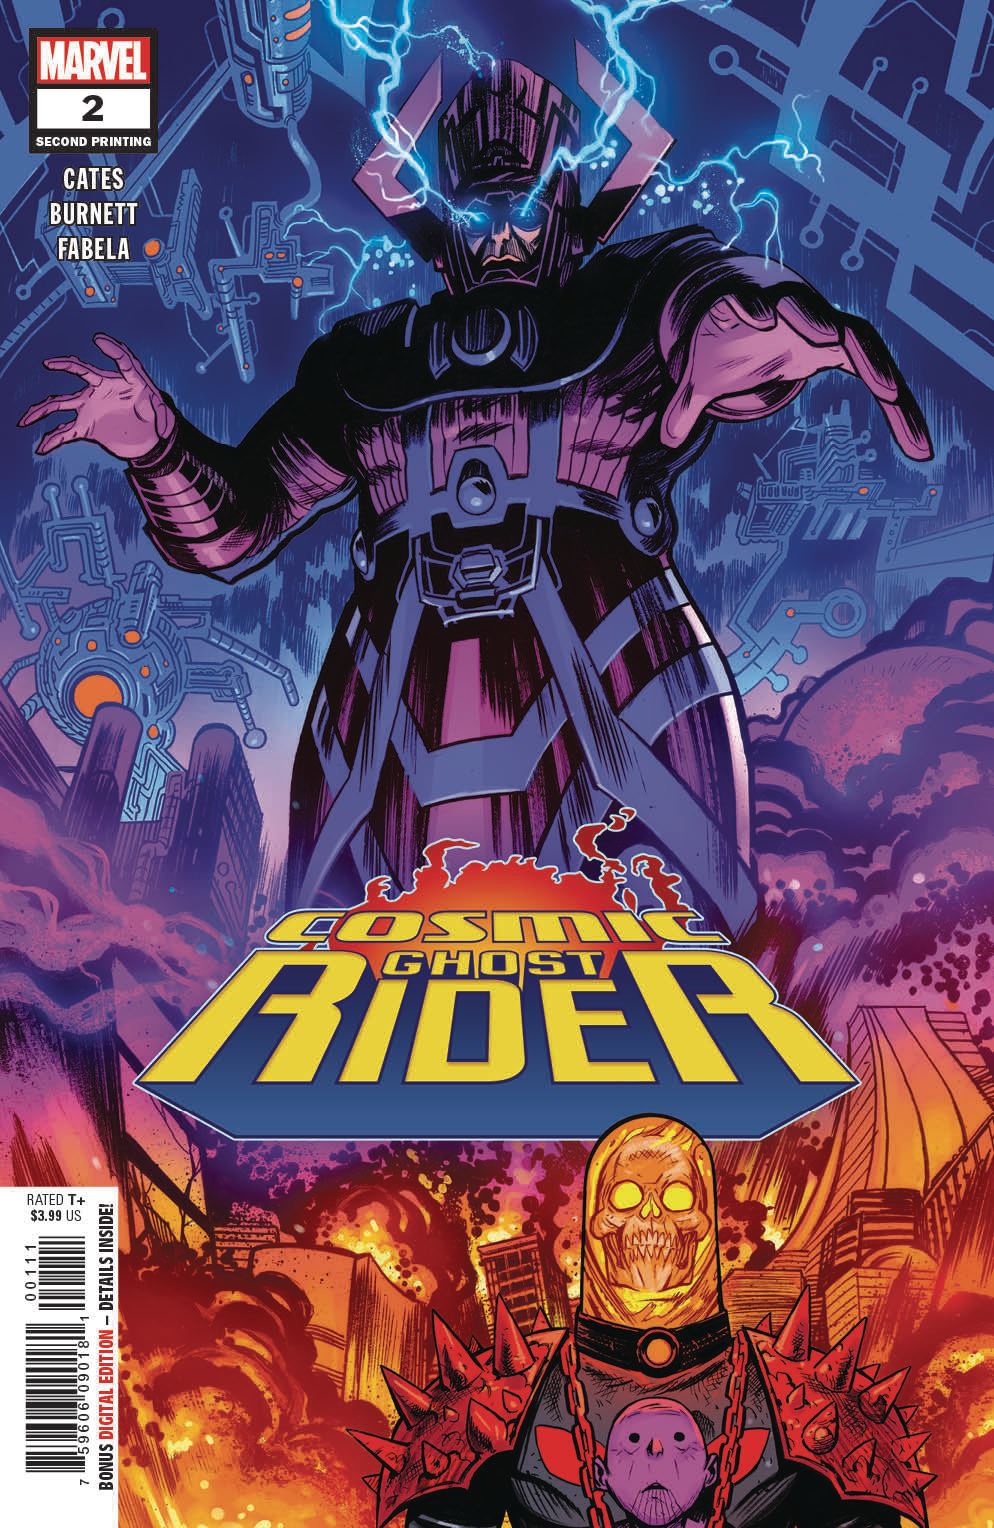 COSMIC GHOST RIDER #2 (OF 5) 2ND PTG BURNETT VAR